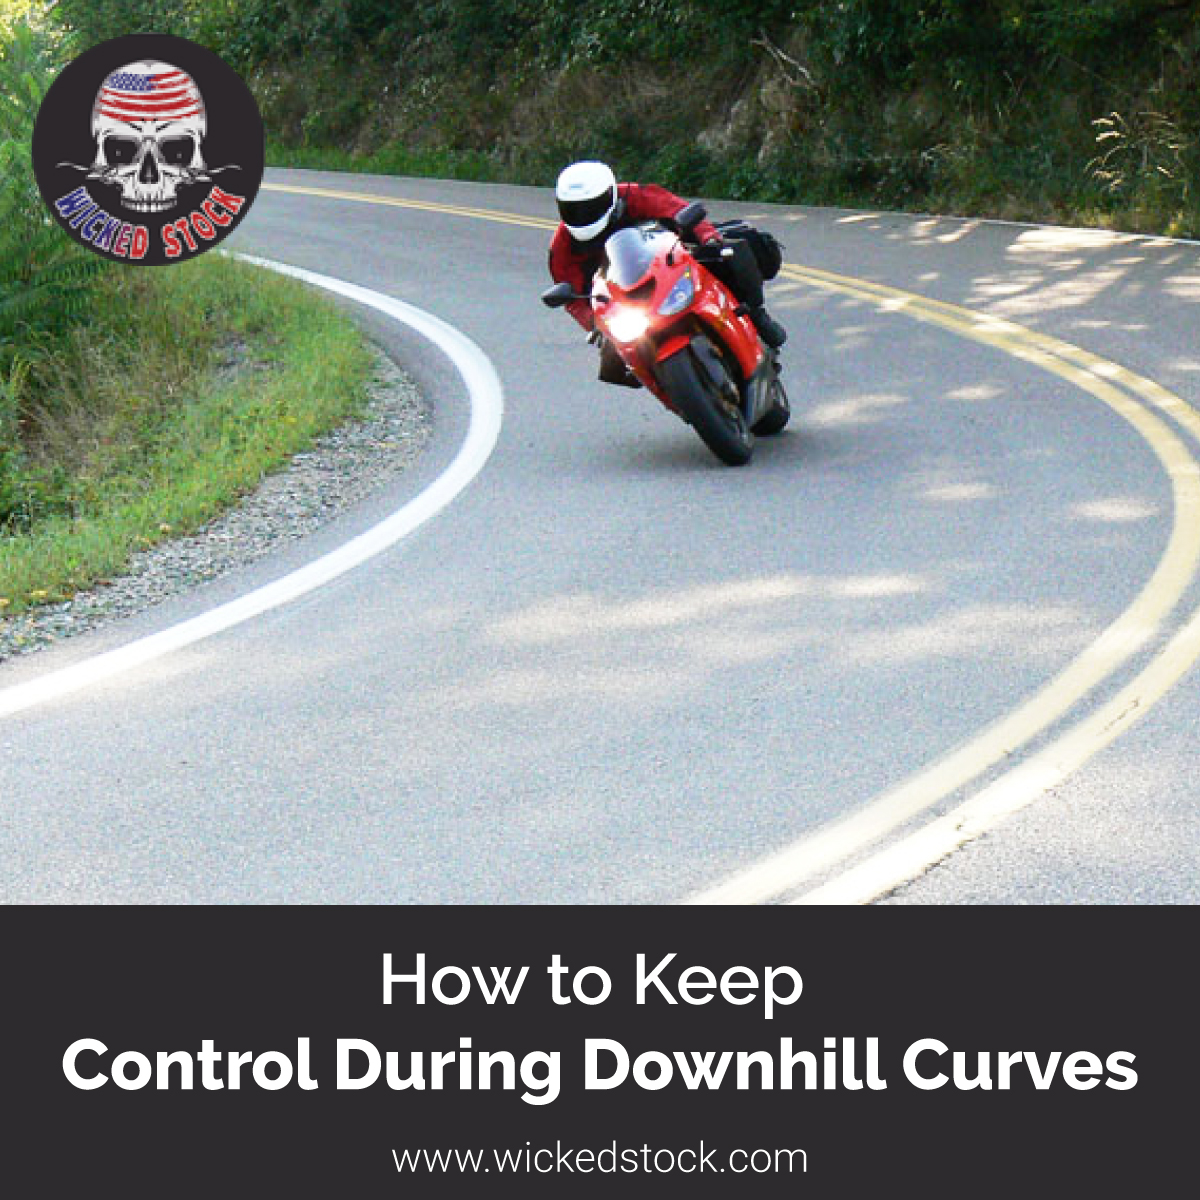 How to Keep Control DuringDownhill Curves